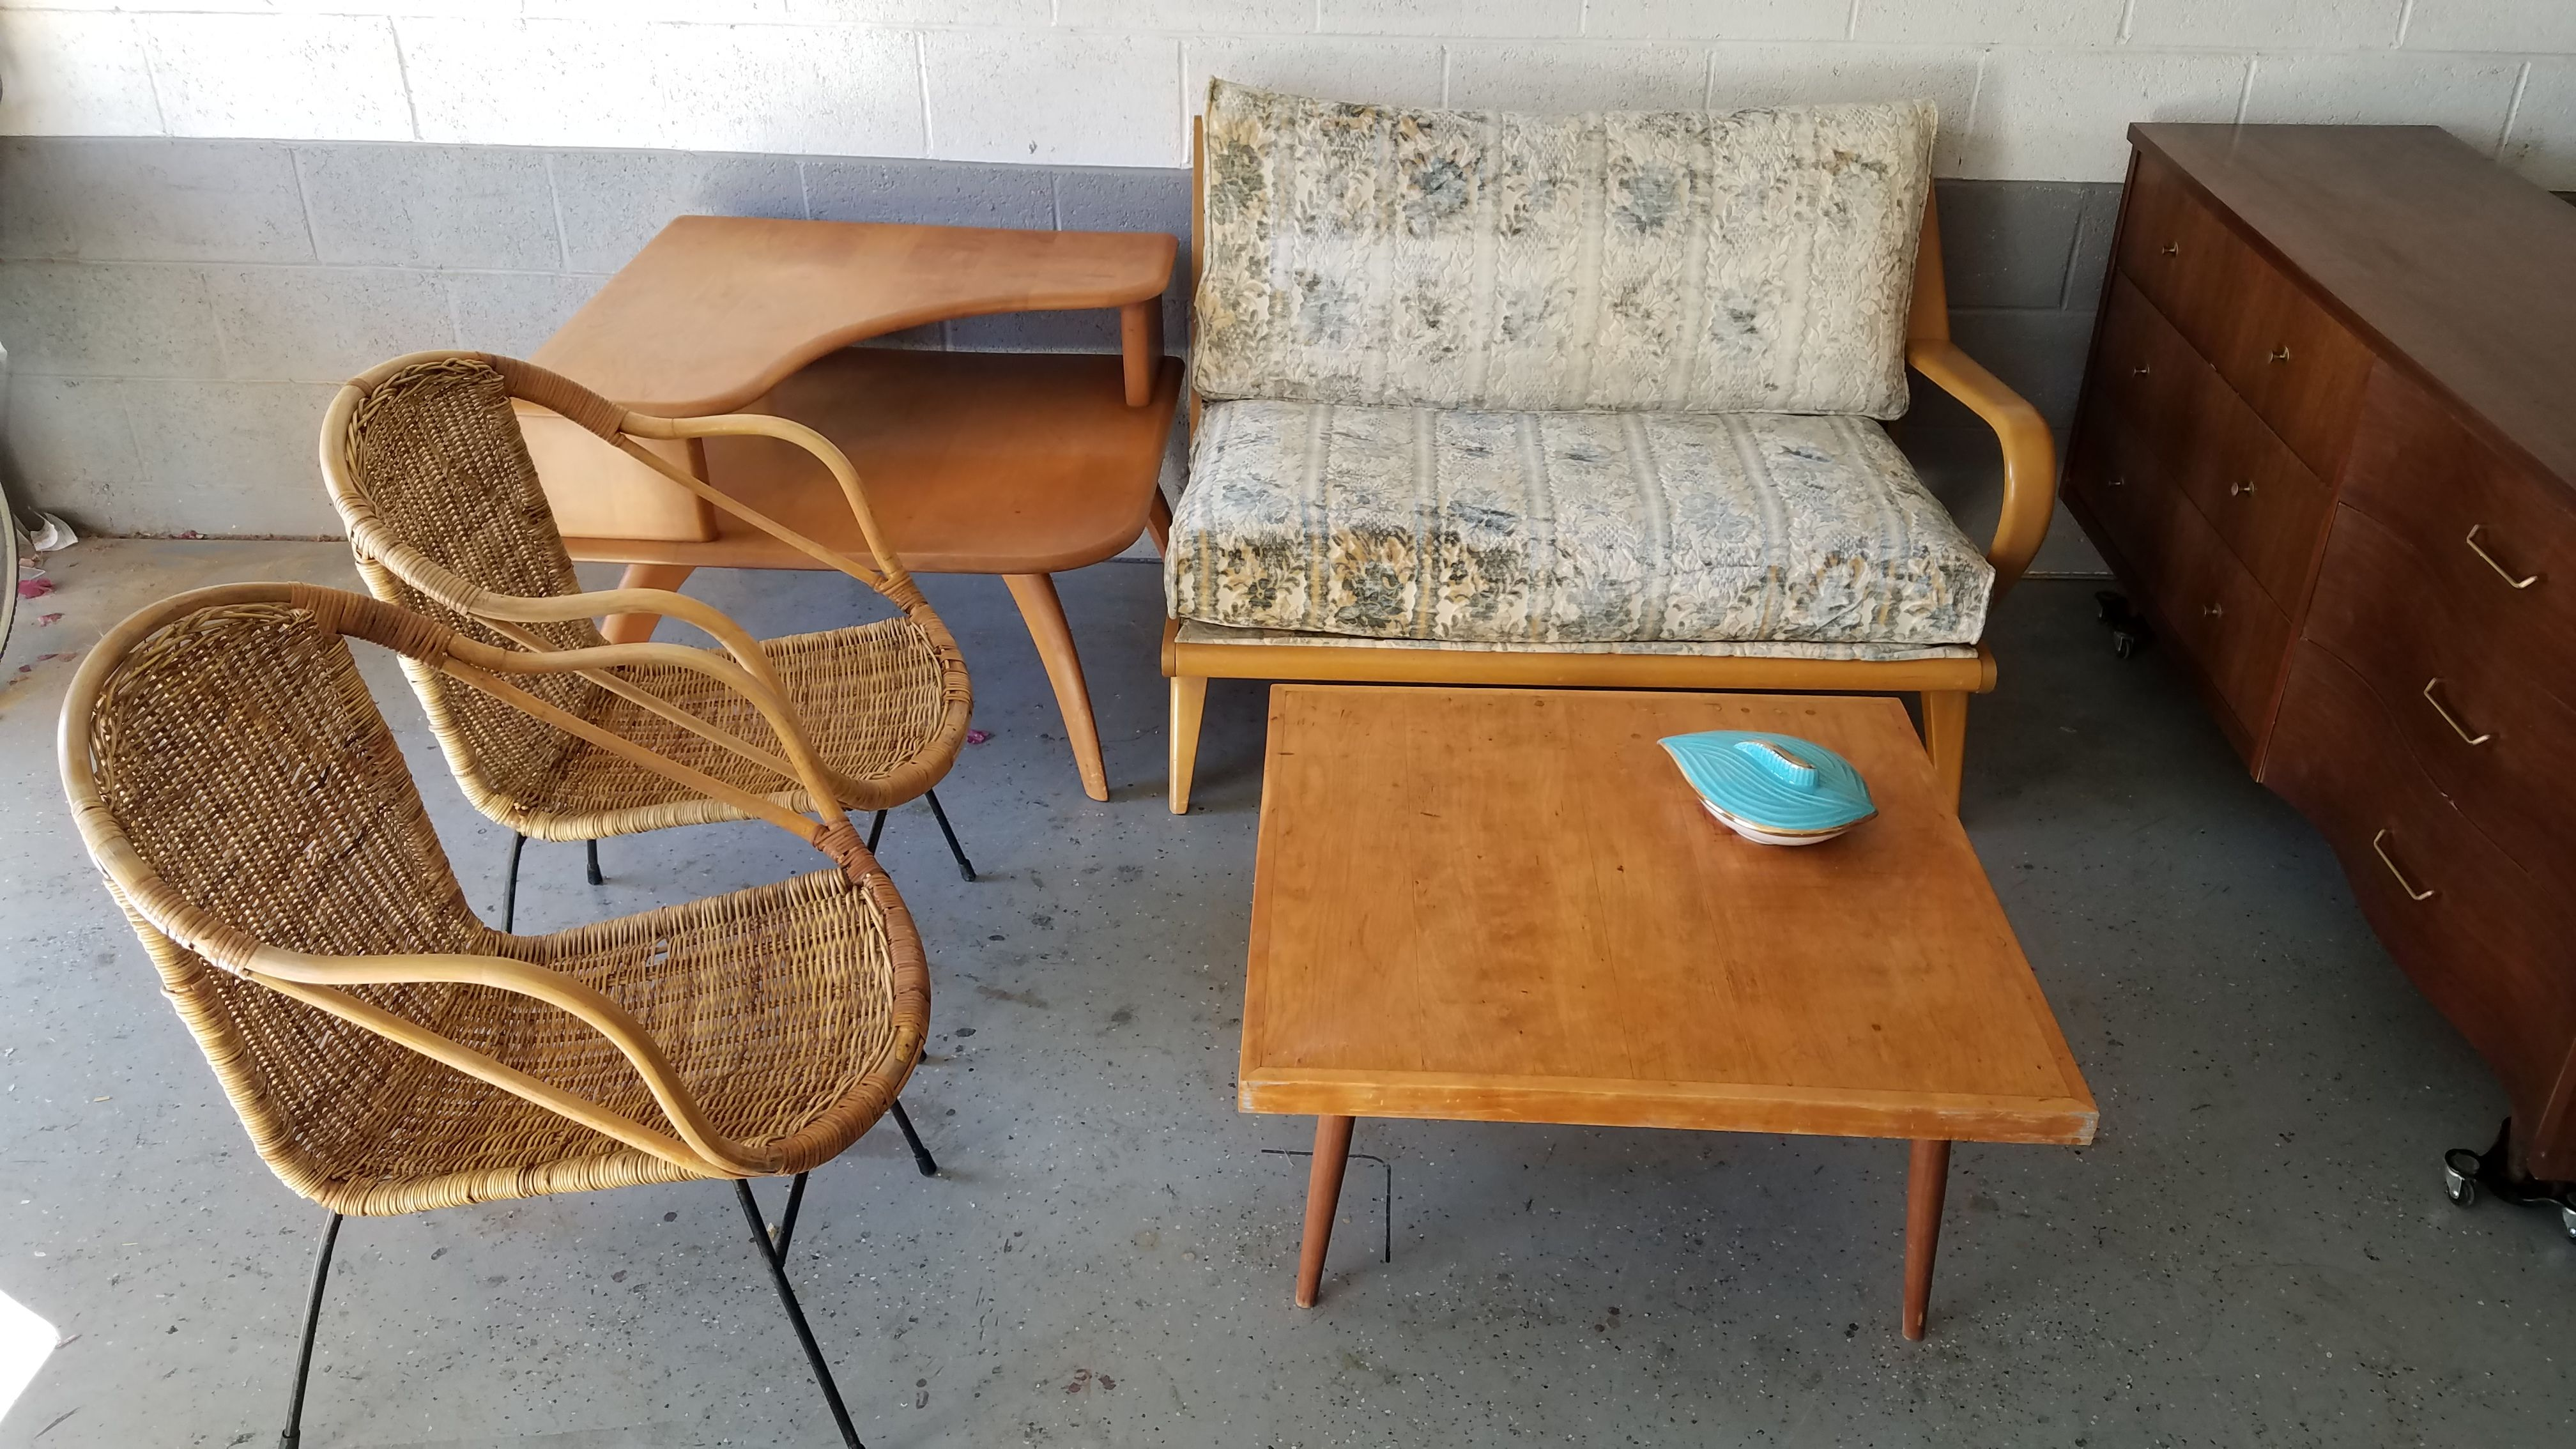 Heywood Wakefield Sofa And Corner Table Paired With Arthur Umanoff Chairs Available On Phoenix Craigslist Mid Century Furniture Corner Table Chair